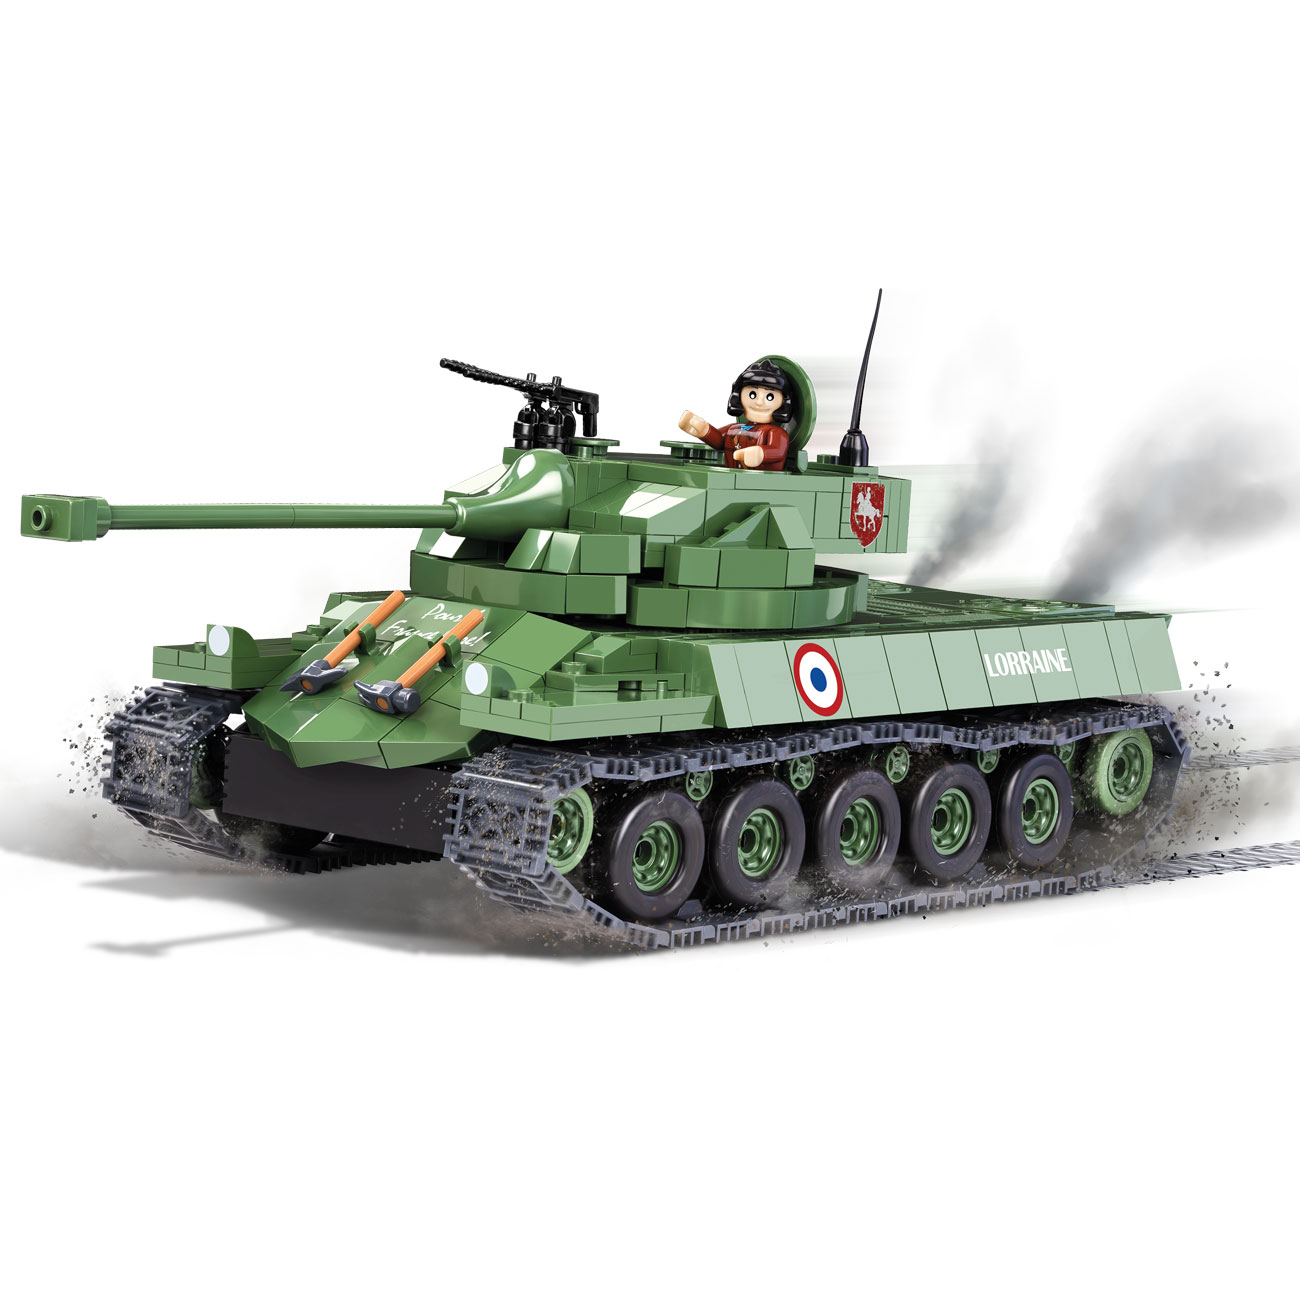 Cobi World Of Tanks Roll Out Small Army Bausatz Panzer F19 Lorraine 40T 540 Teile 3025 0